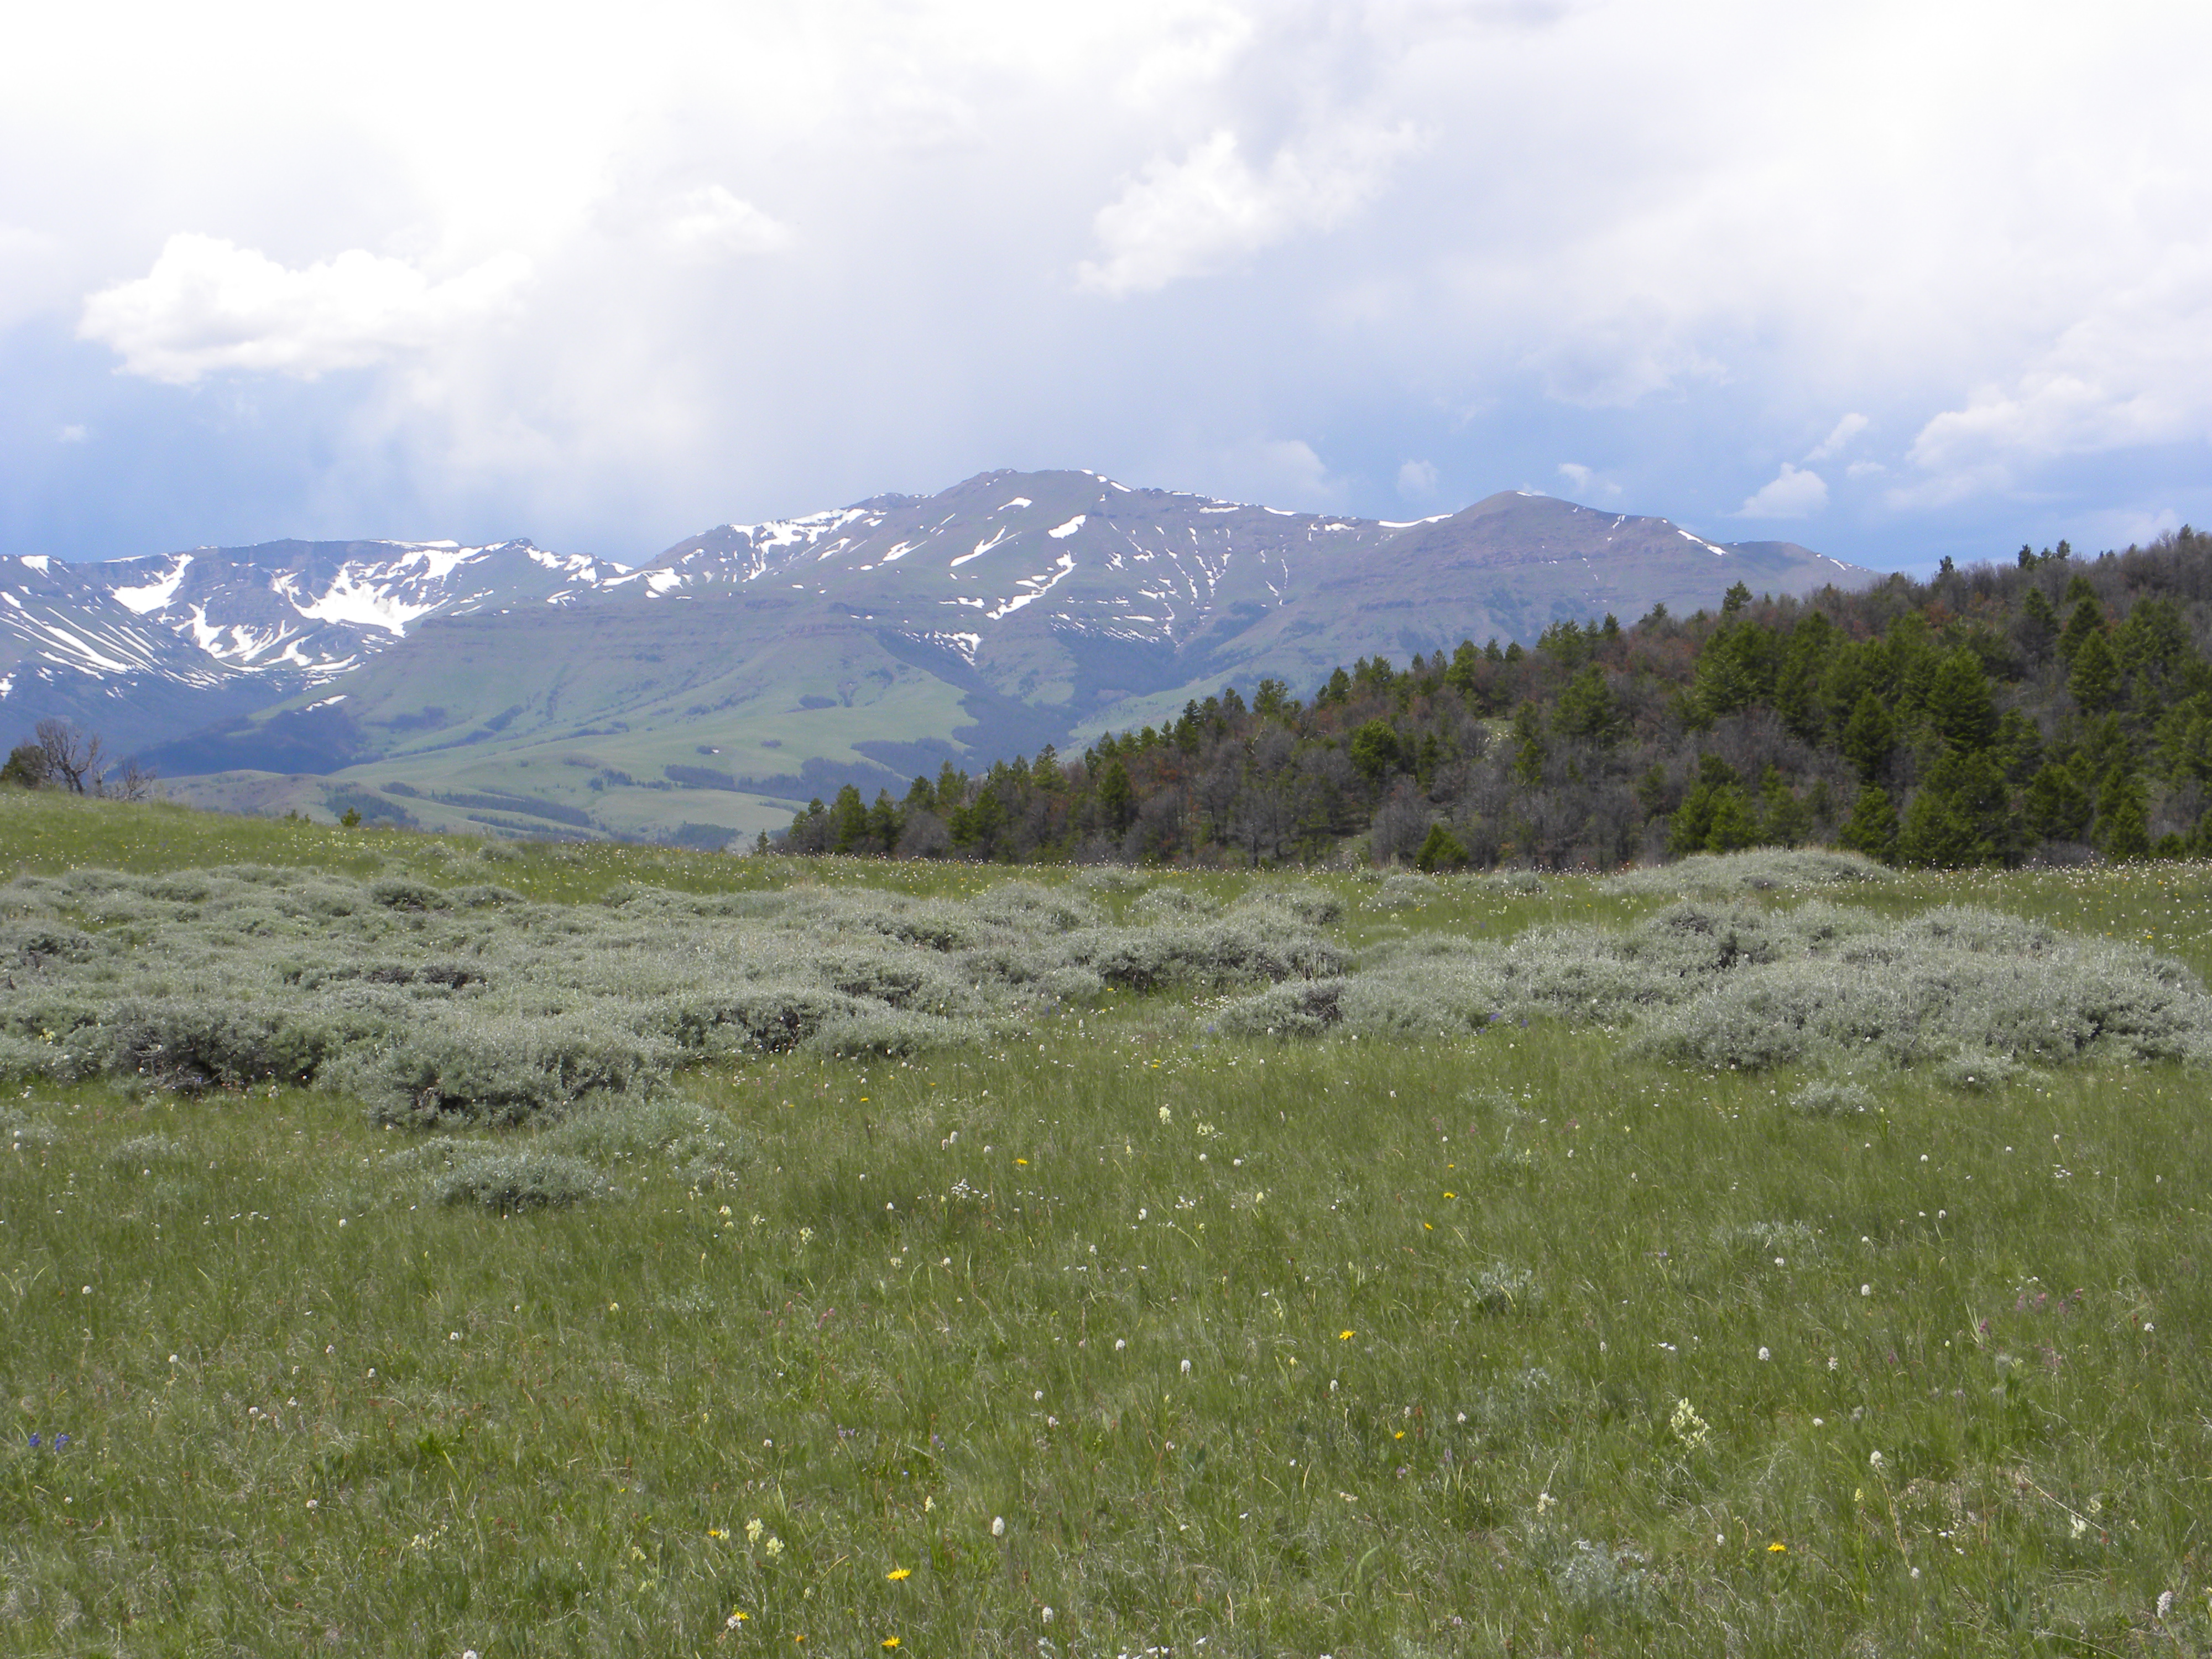 Meadow of bunchgrasses and sage